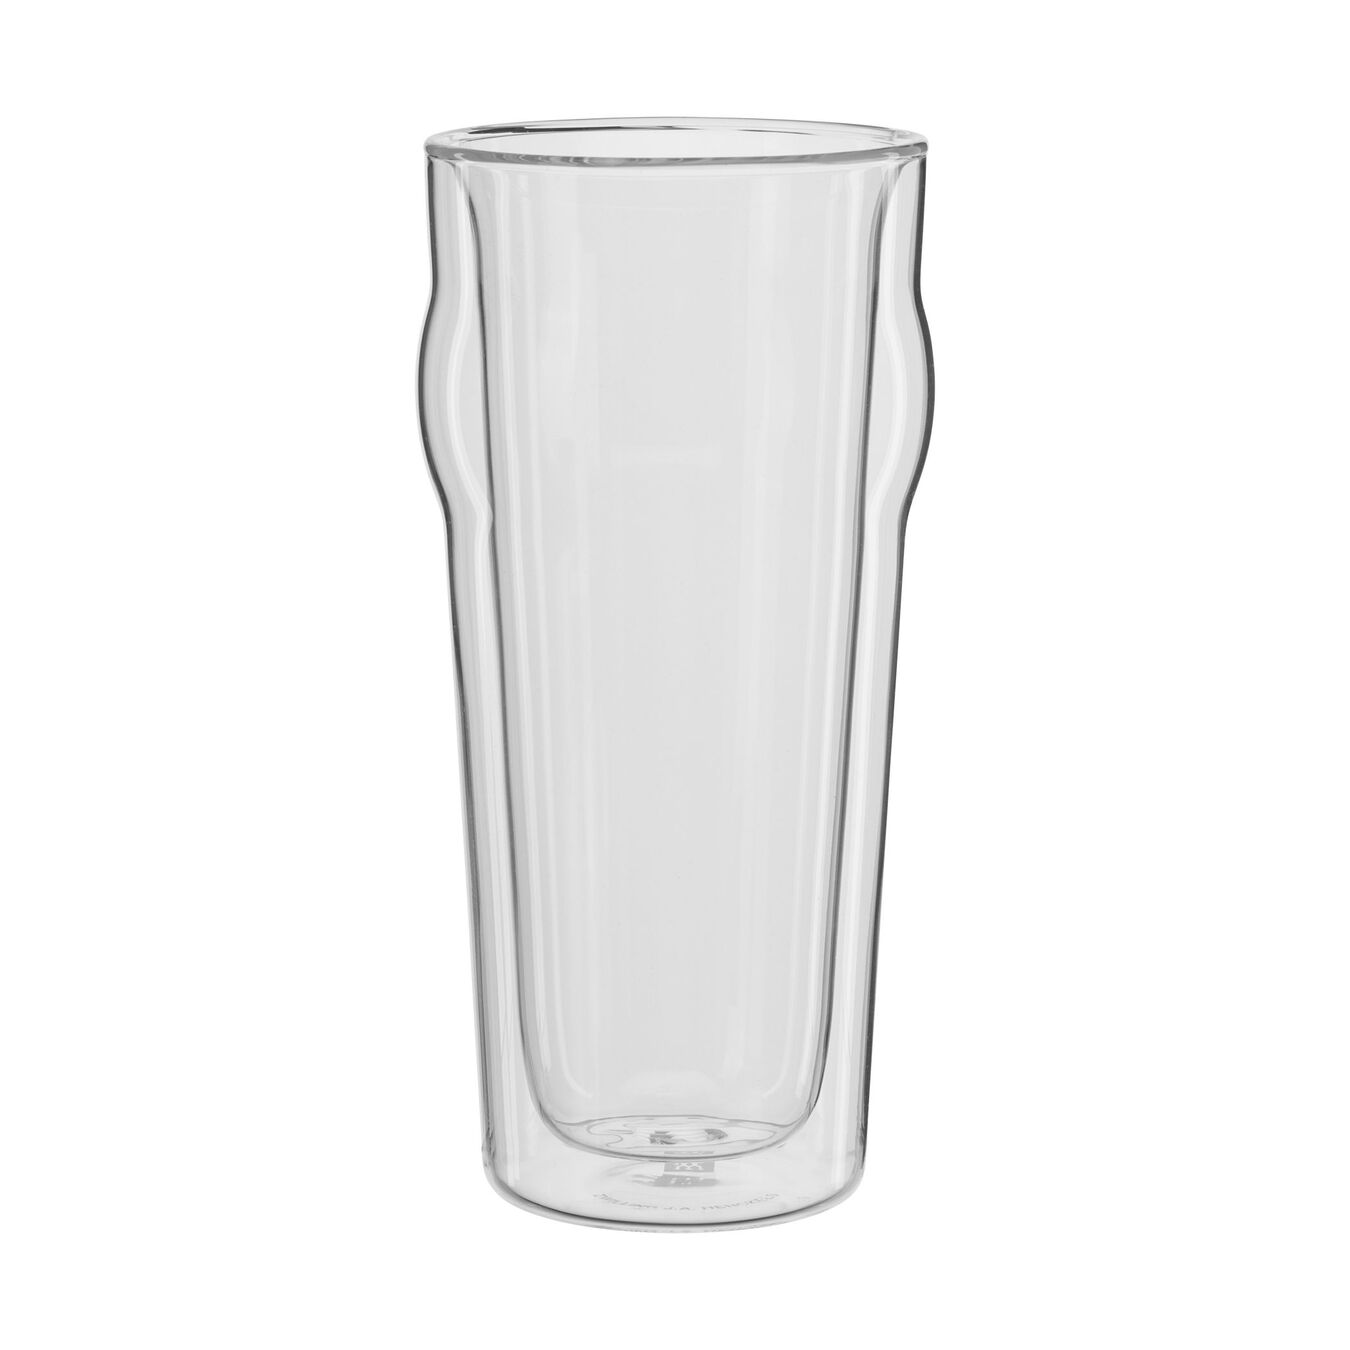 Double-Wall Pint & Pilsner Glass Set,,large 2